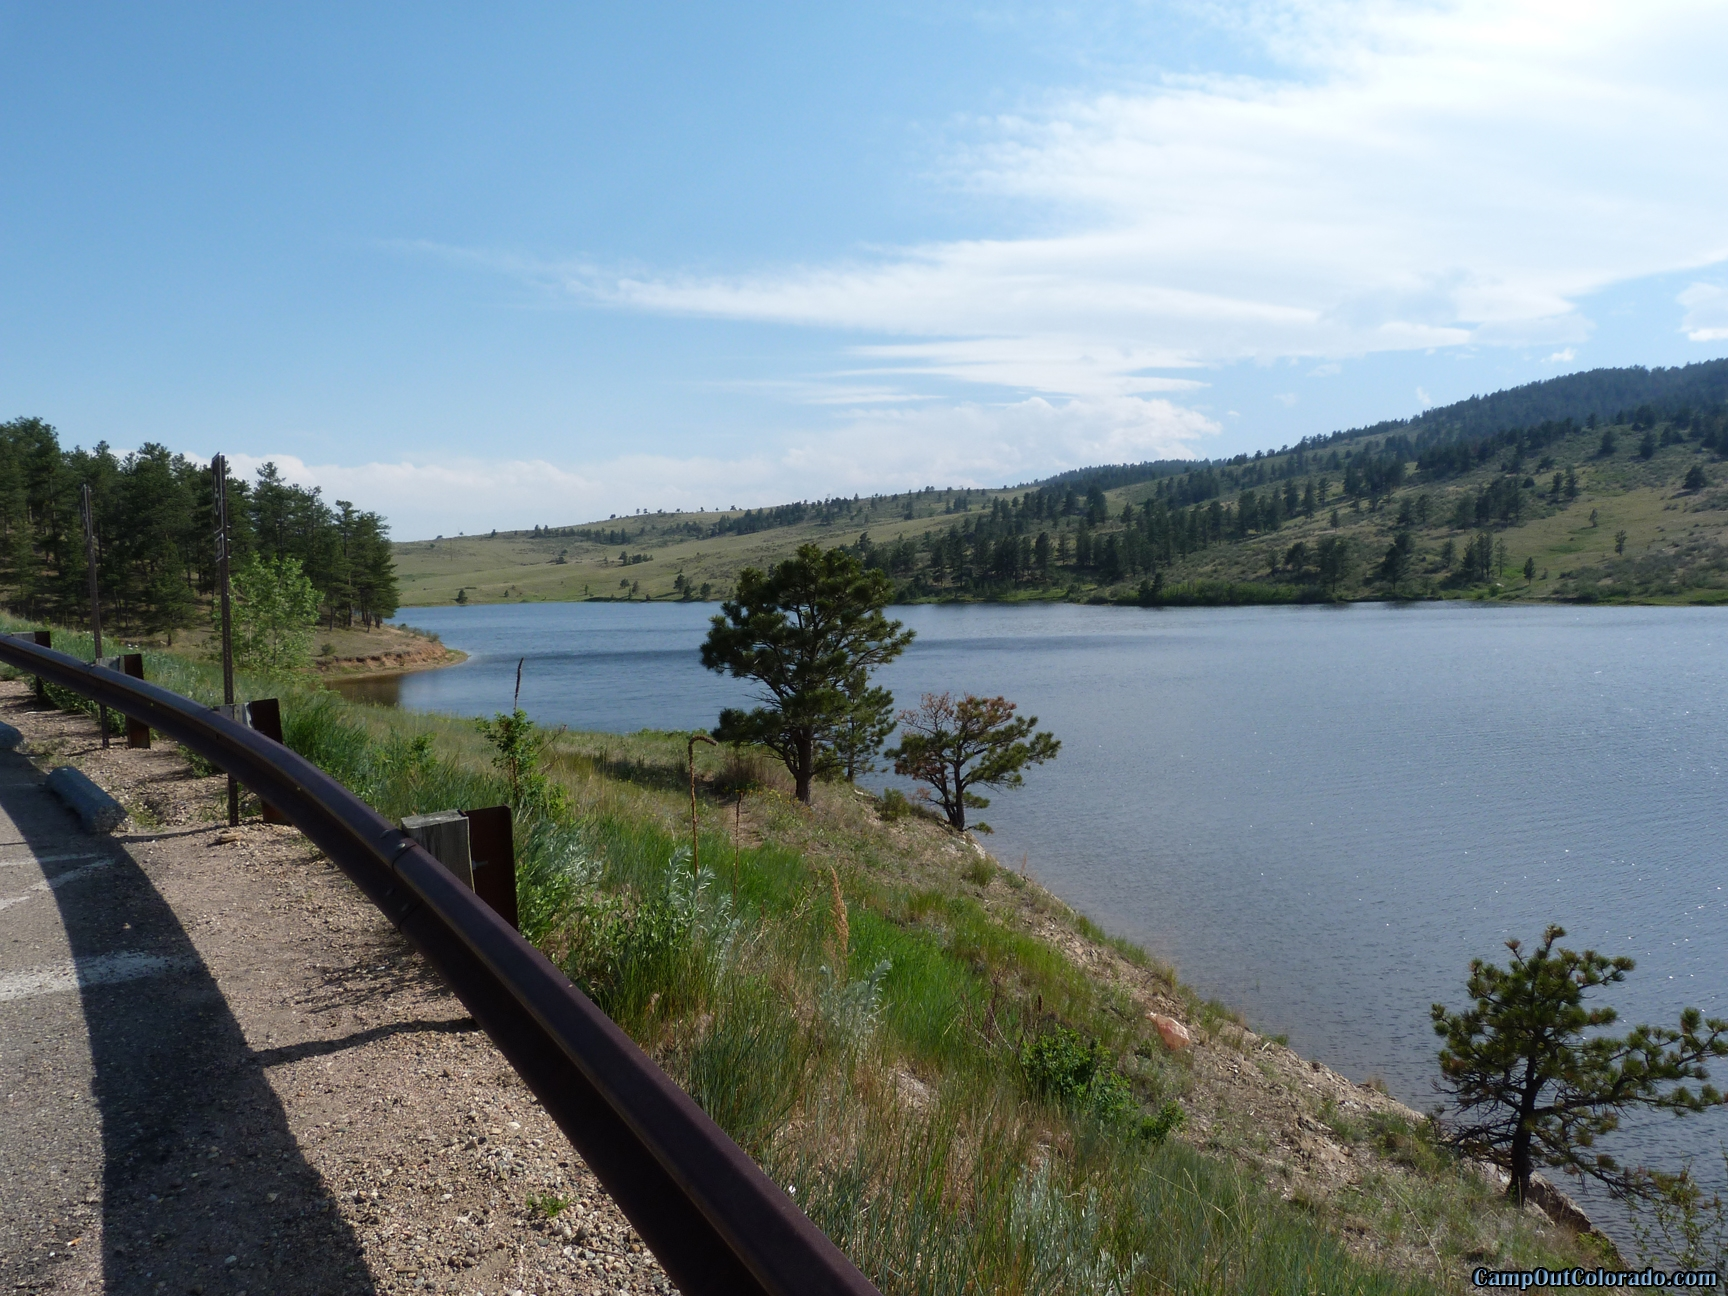 camp-out-colorado-pinewood-long-lake-view-from-dam